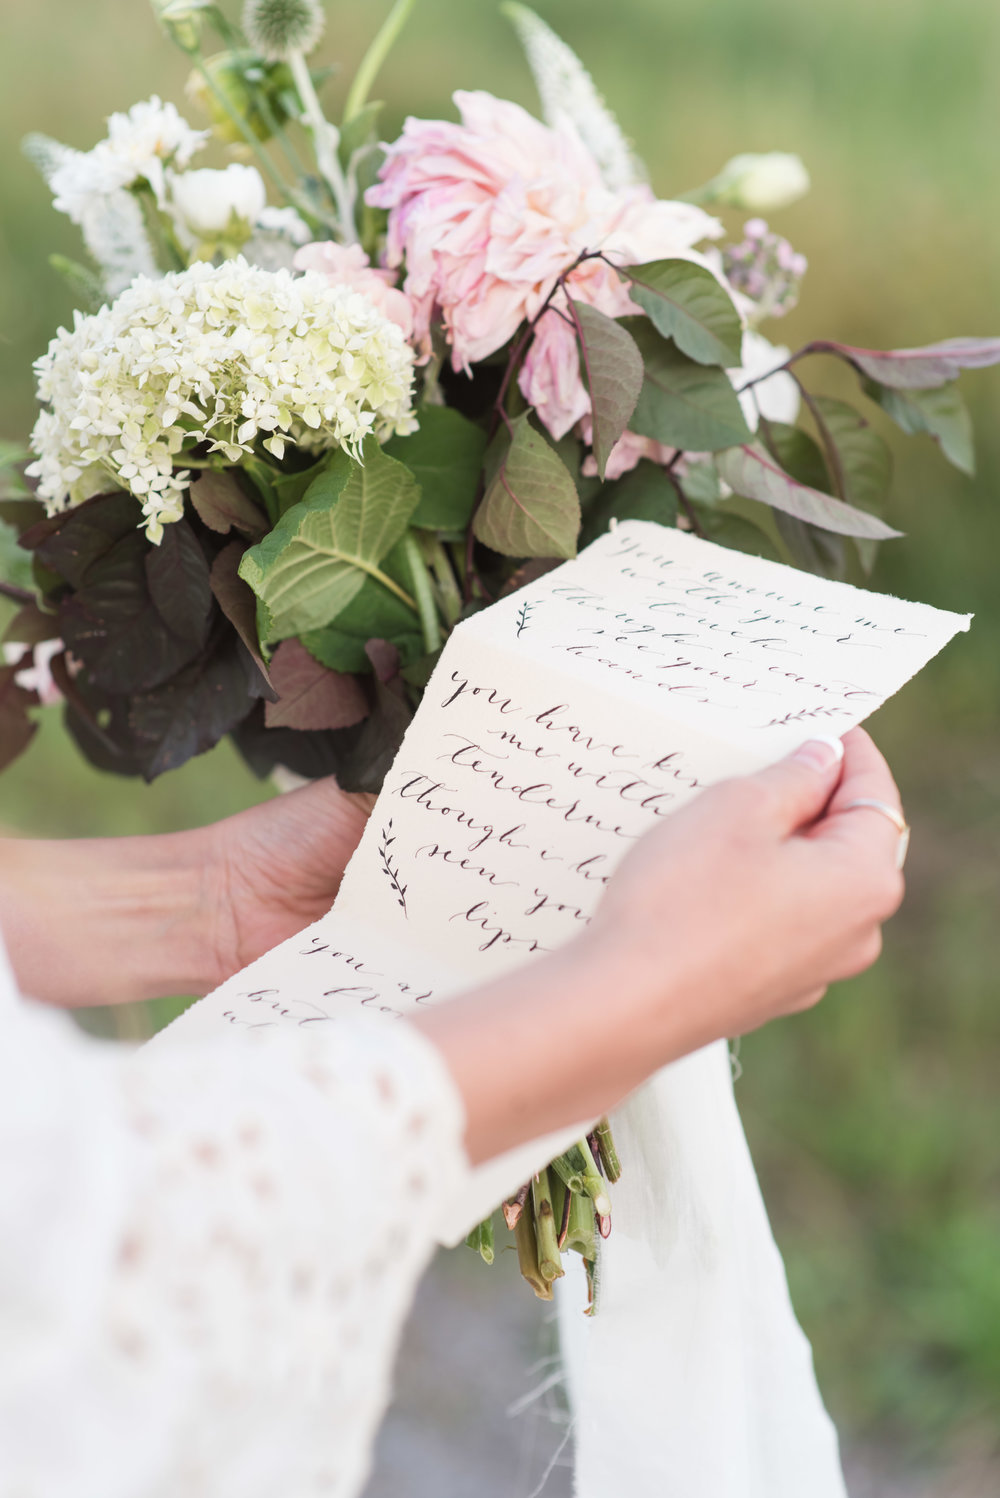 Pointed Pen Modern Calligraphy Wedding Vows